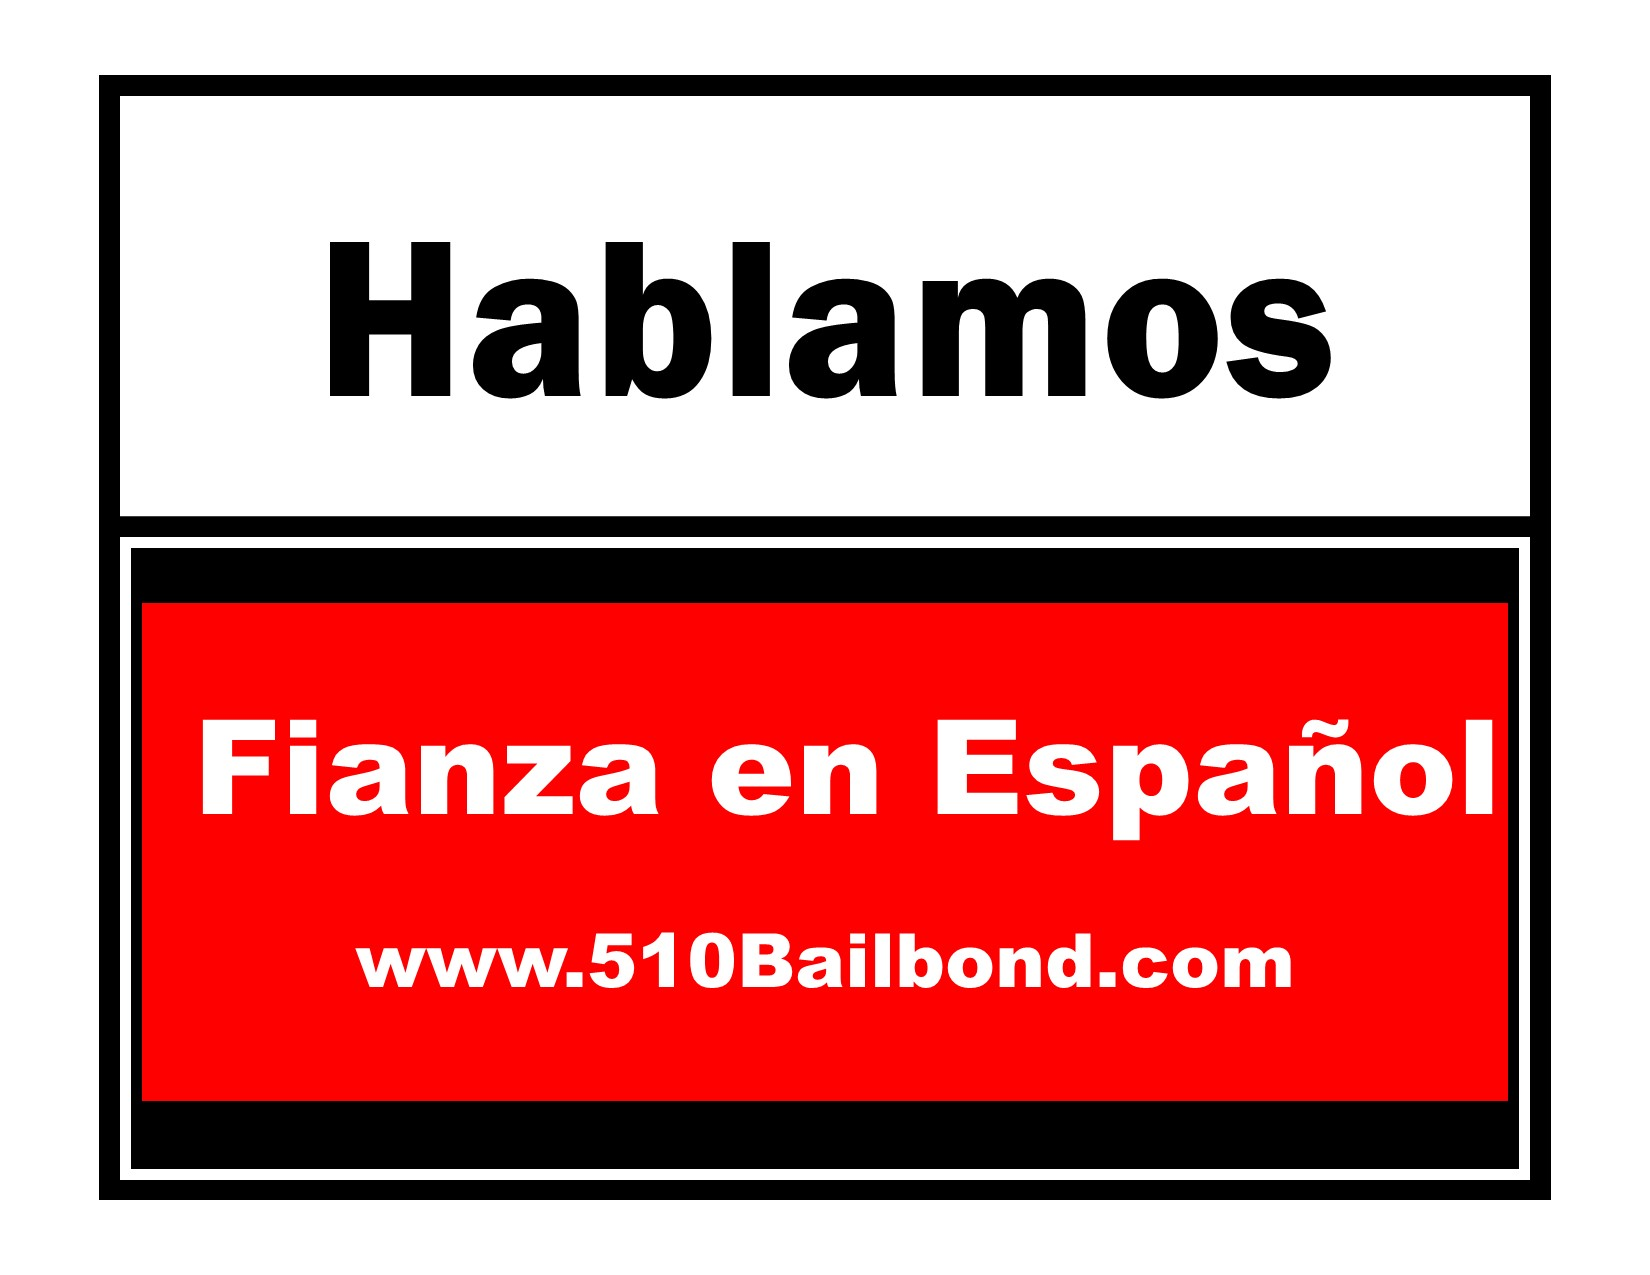 20140424 We Speak bail en espanol